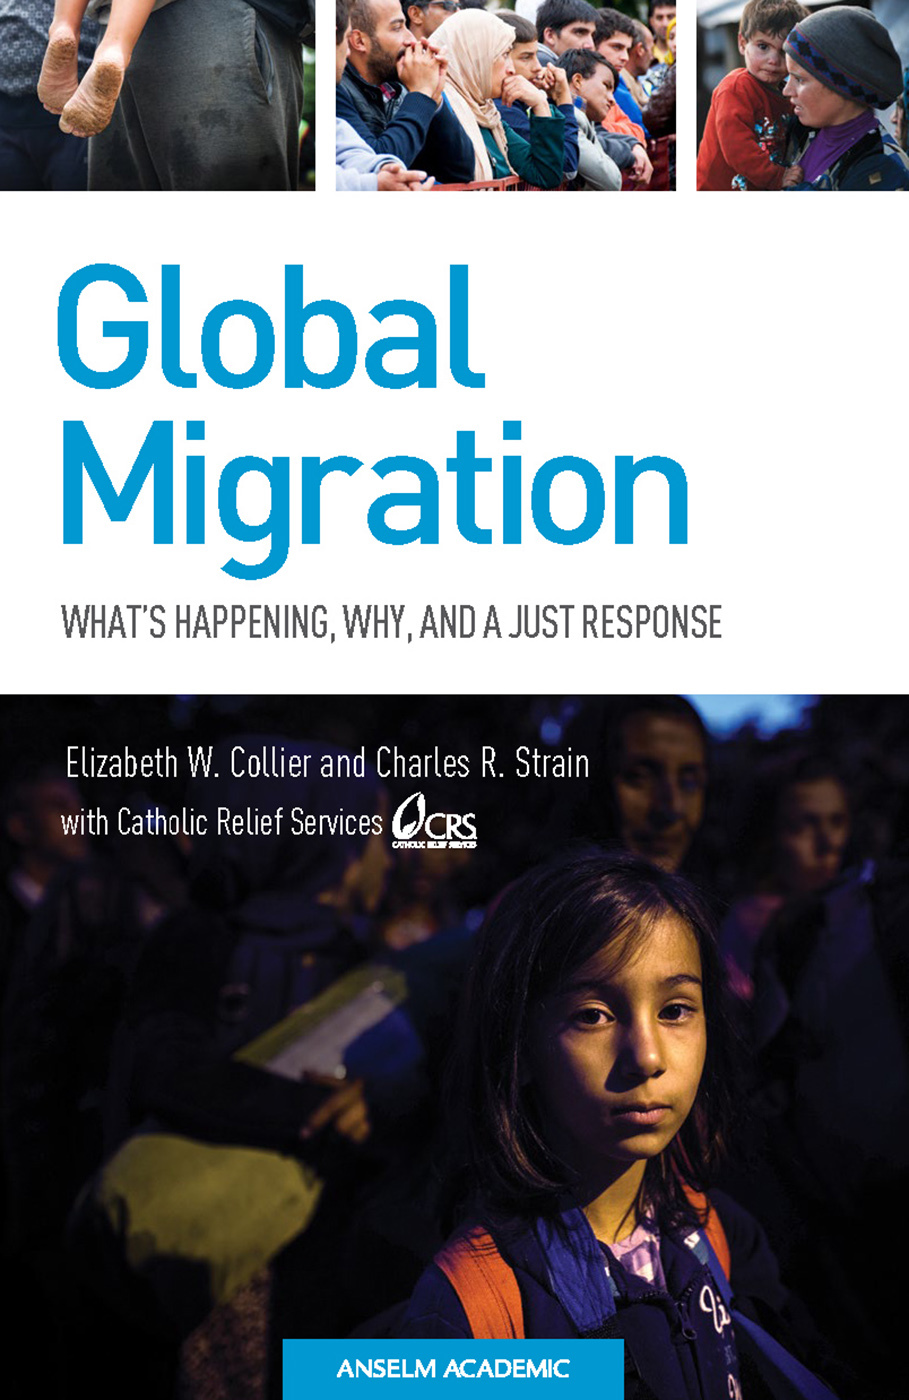 Global Migration: What's Happening, Why, and a Just Response